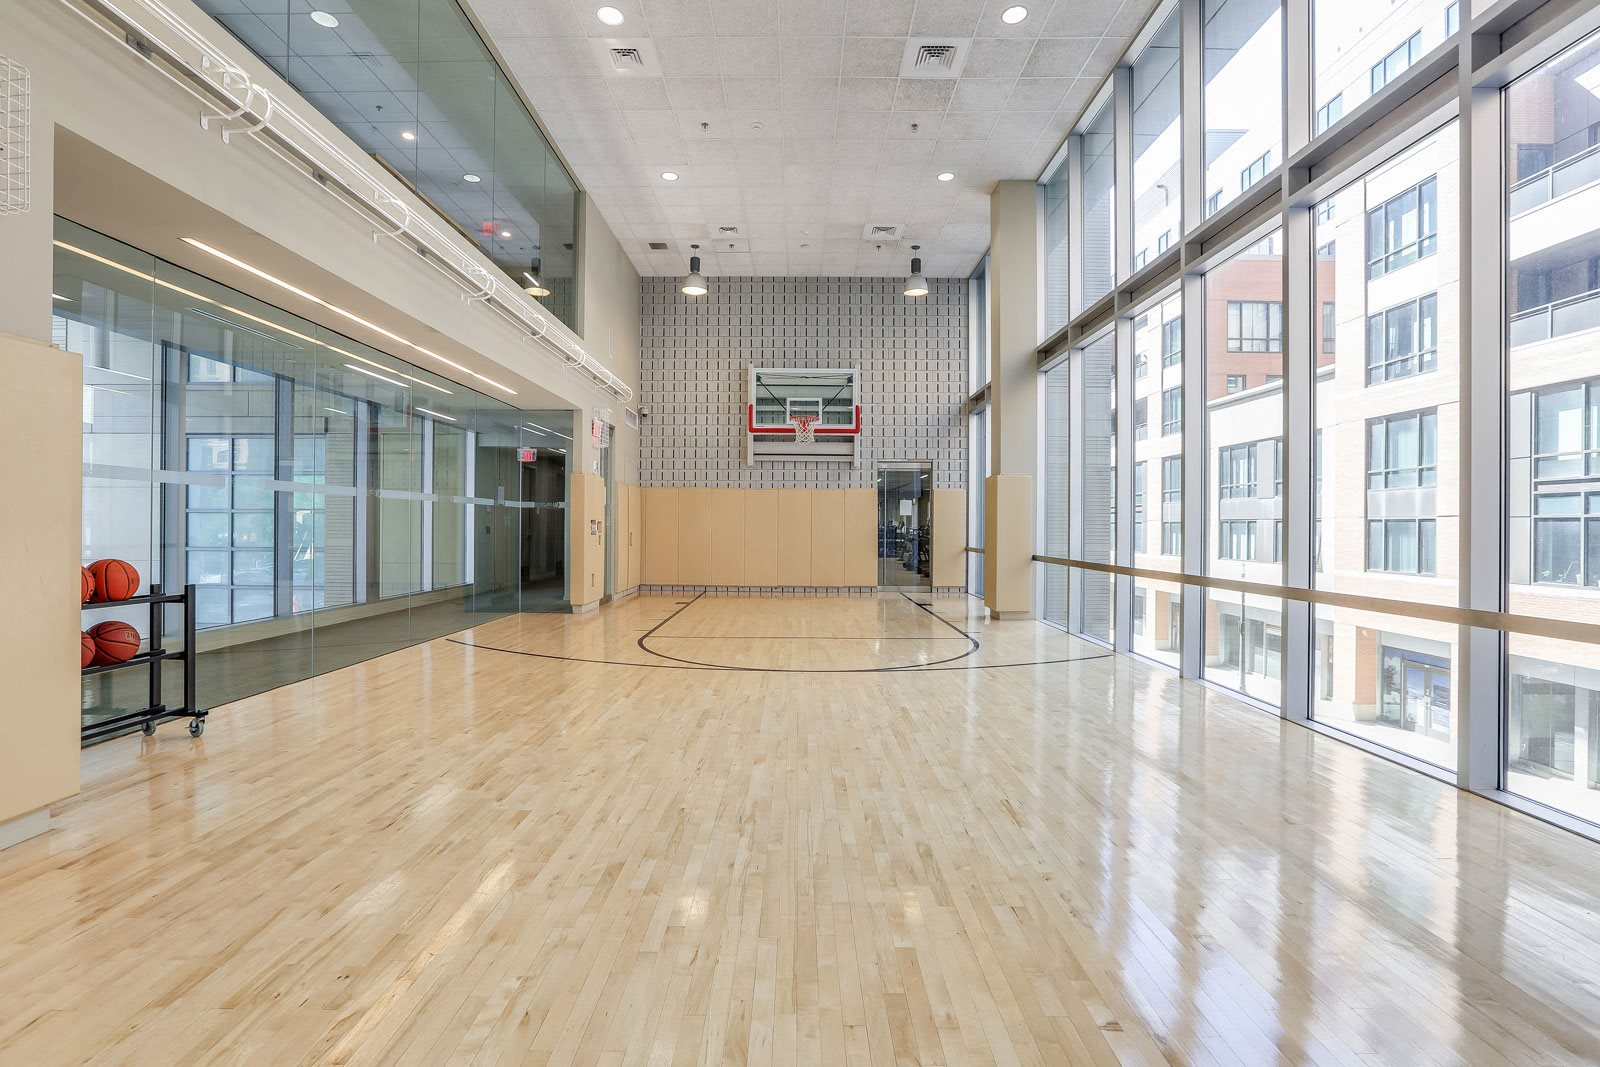 Sports Court for Basketball or Yoga Class at The Victor by Windsor, 110 Beverly St, Boston